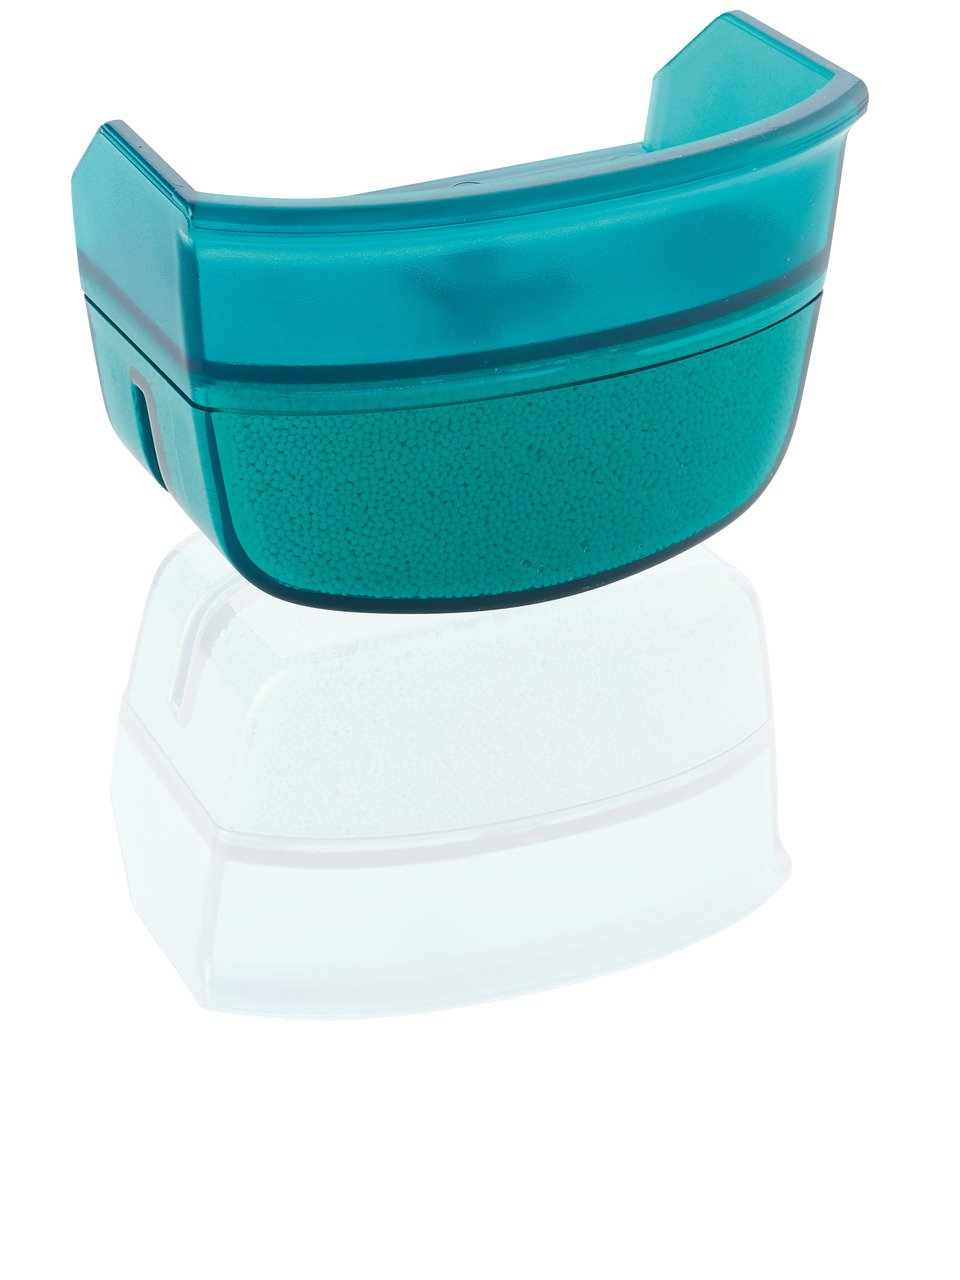 Leifheit Replacement Filter Steam Cleaner Clean Tenso, Plastic, Turquoise, 8.6x 5.4x 9.4cm